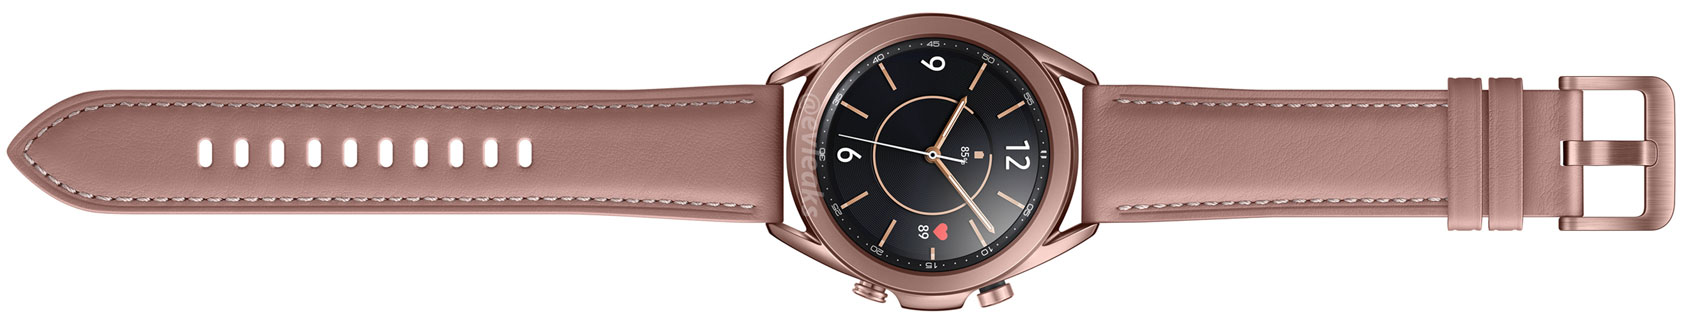 Galaxy Watch 3 - Bronce